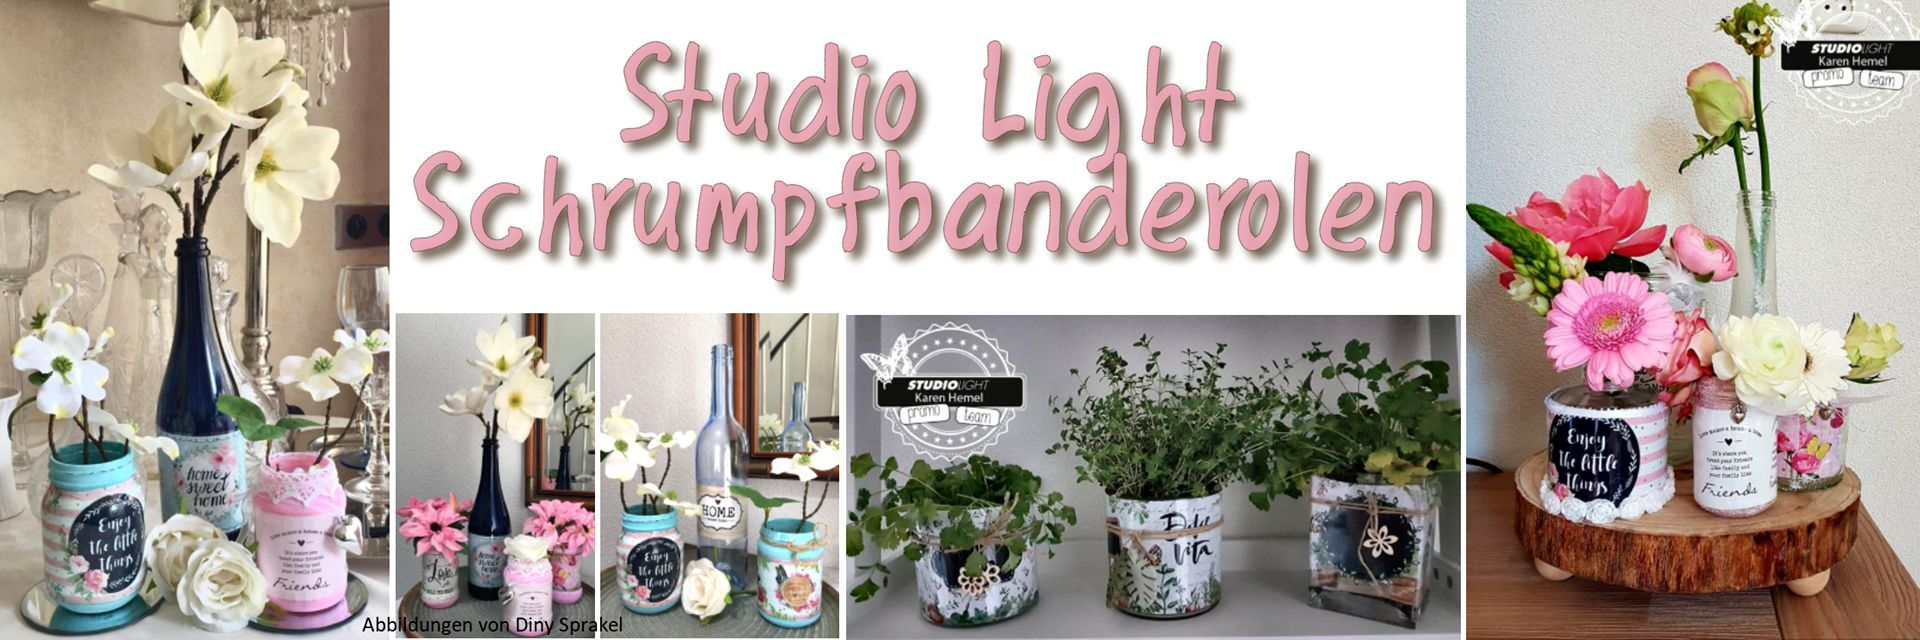 Studio Light Schrumpfbanderolen